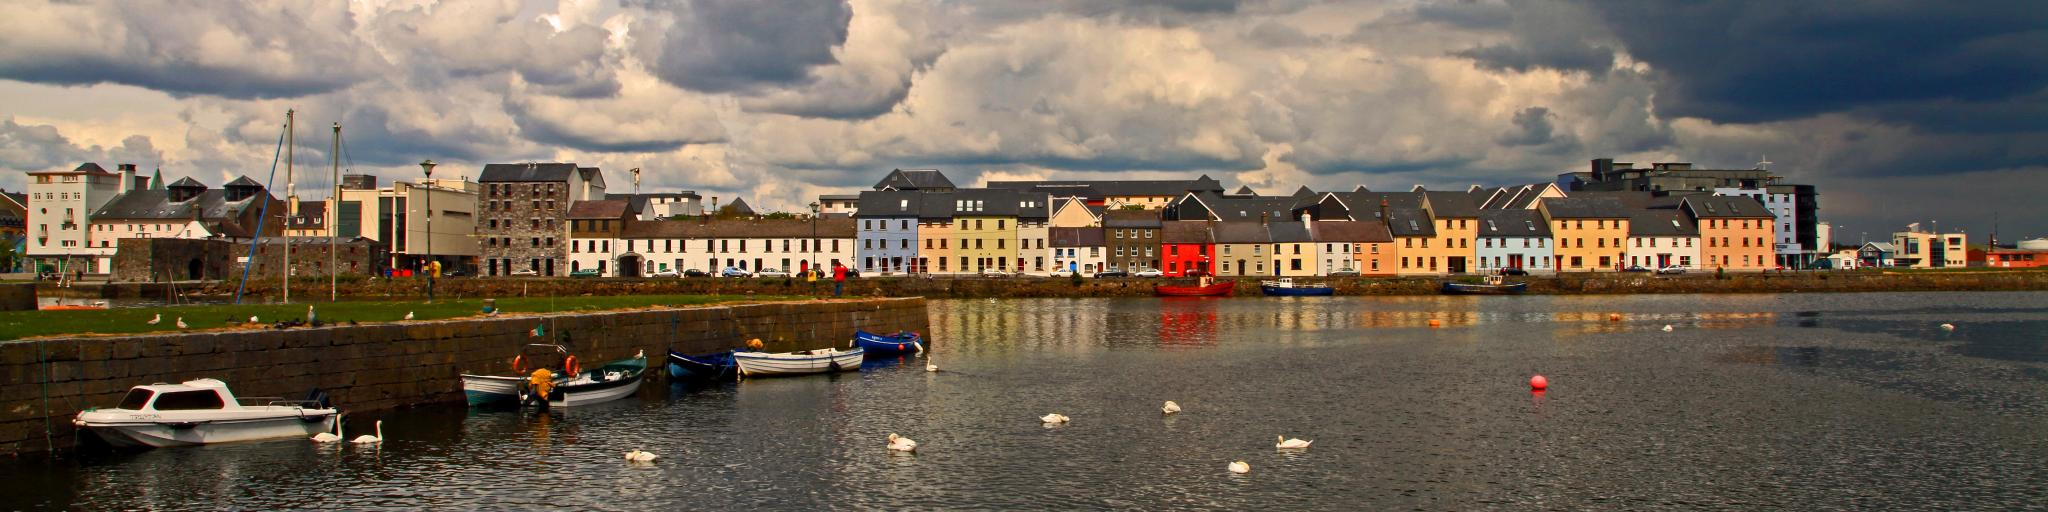 Colourful houses line the banks of the River Corrib in Galway